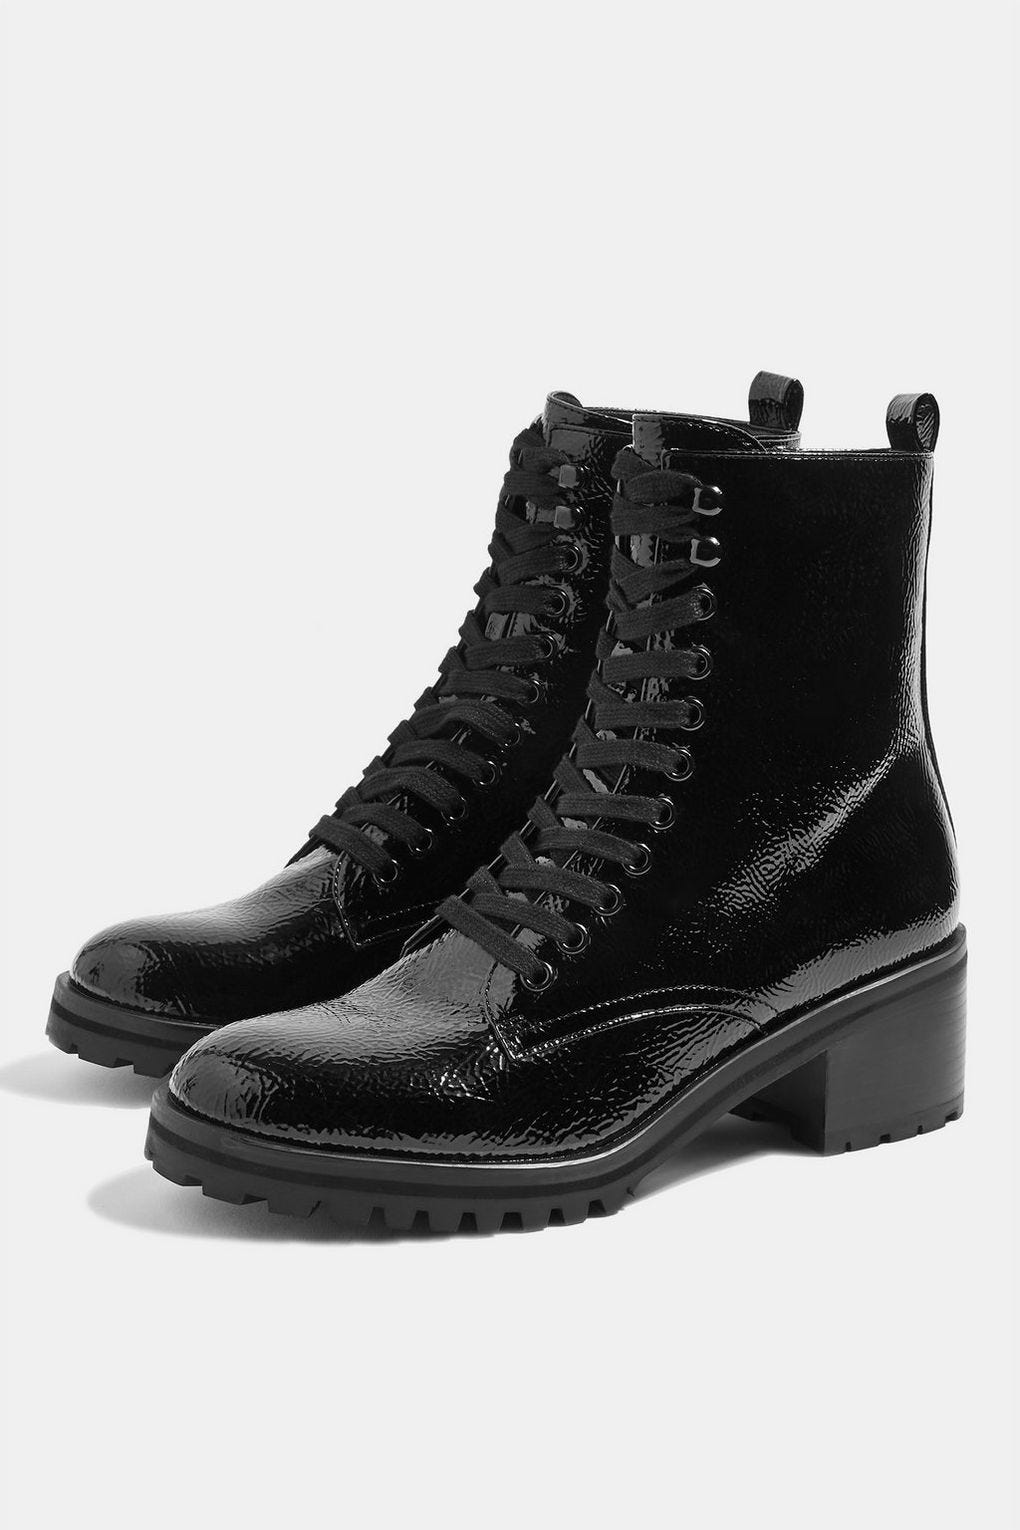 5577c1ce Womens Boots Trends - Best Winter 2019 Boot Styles